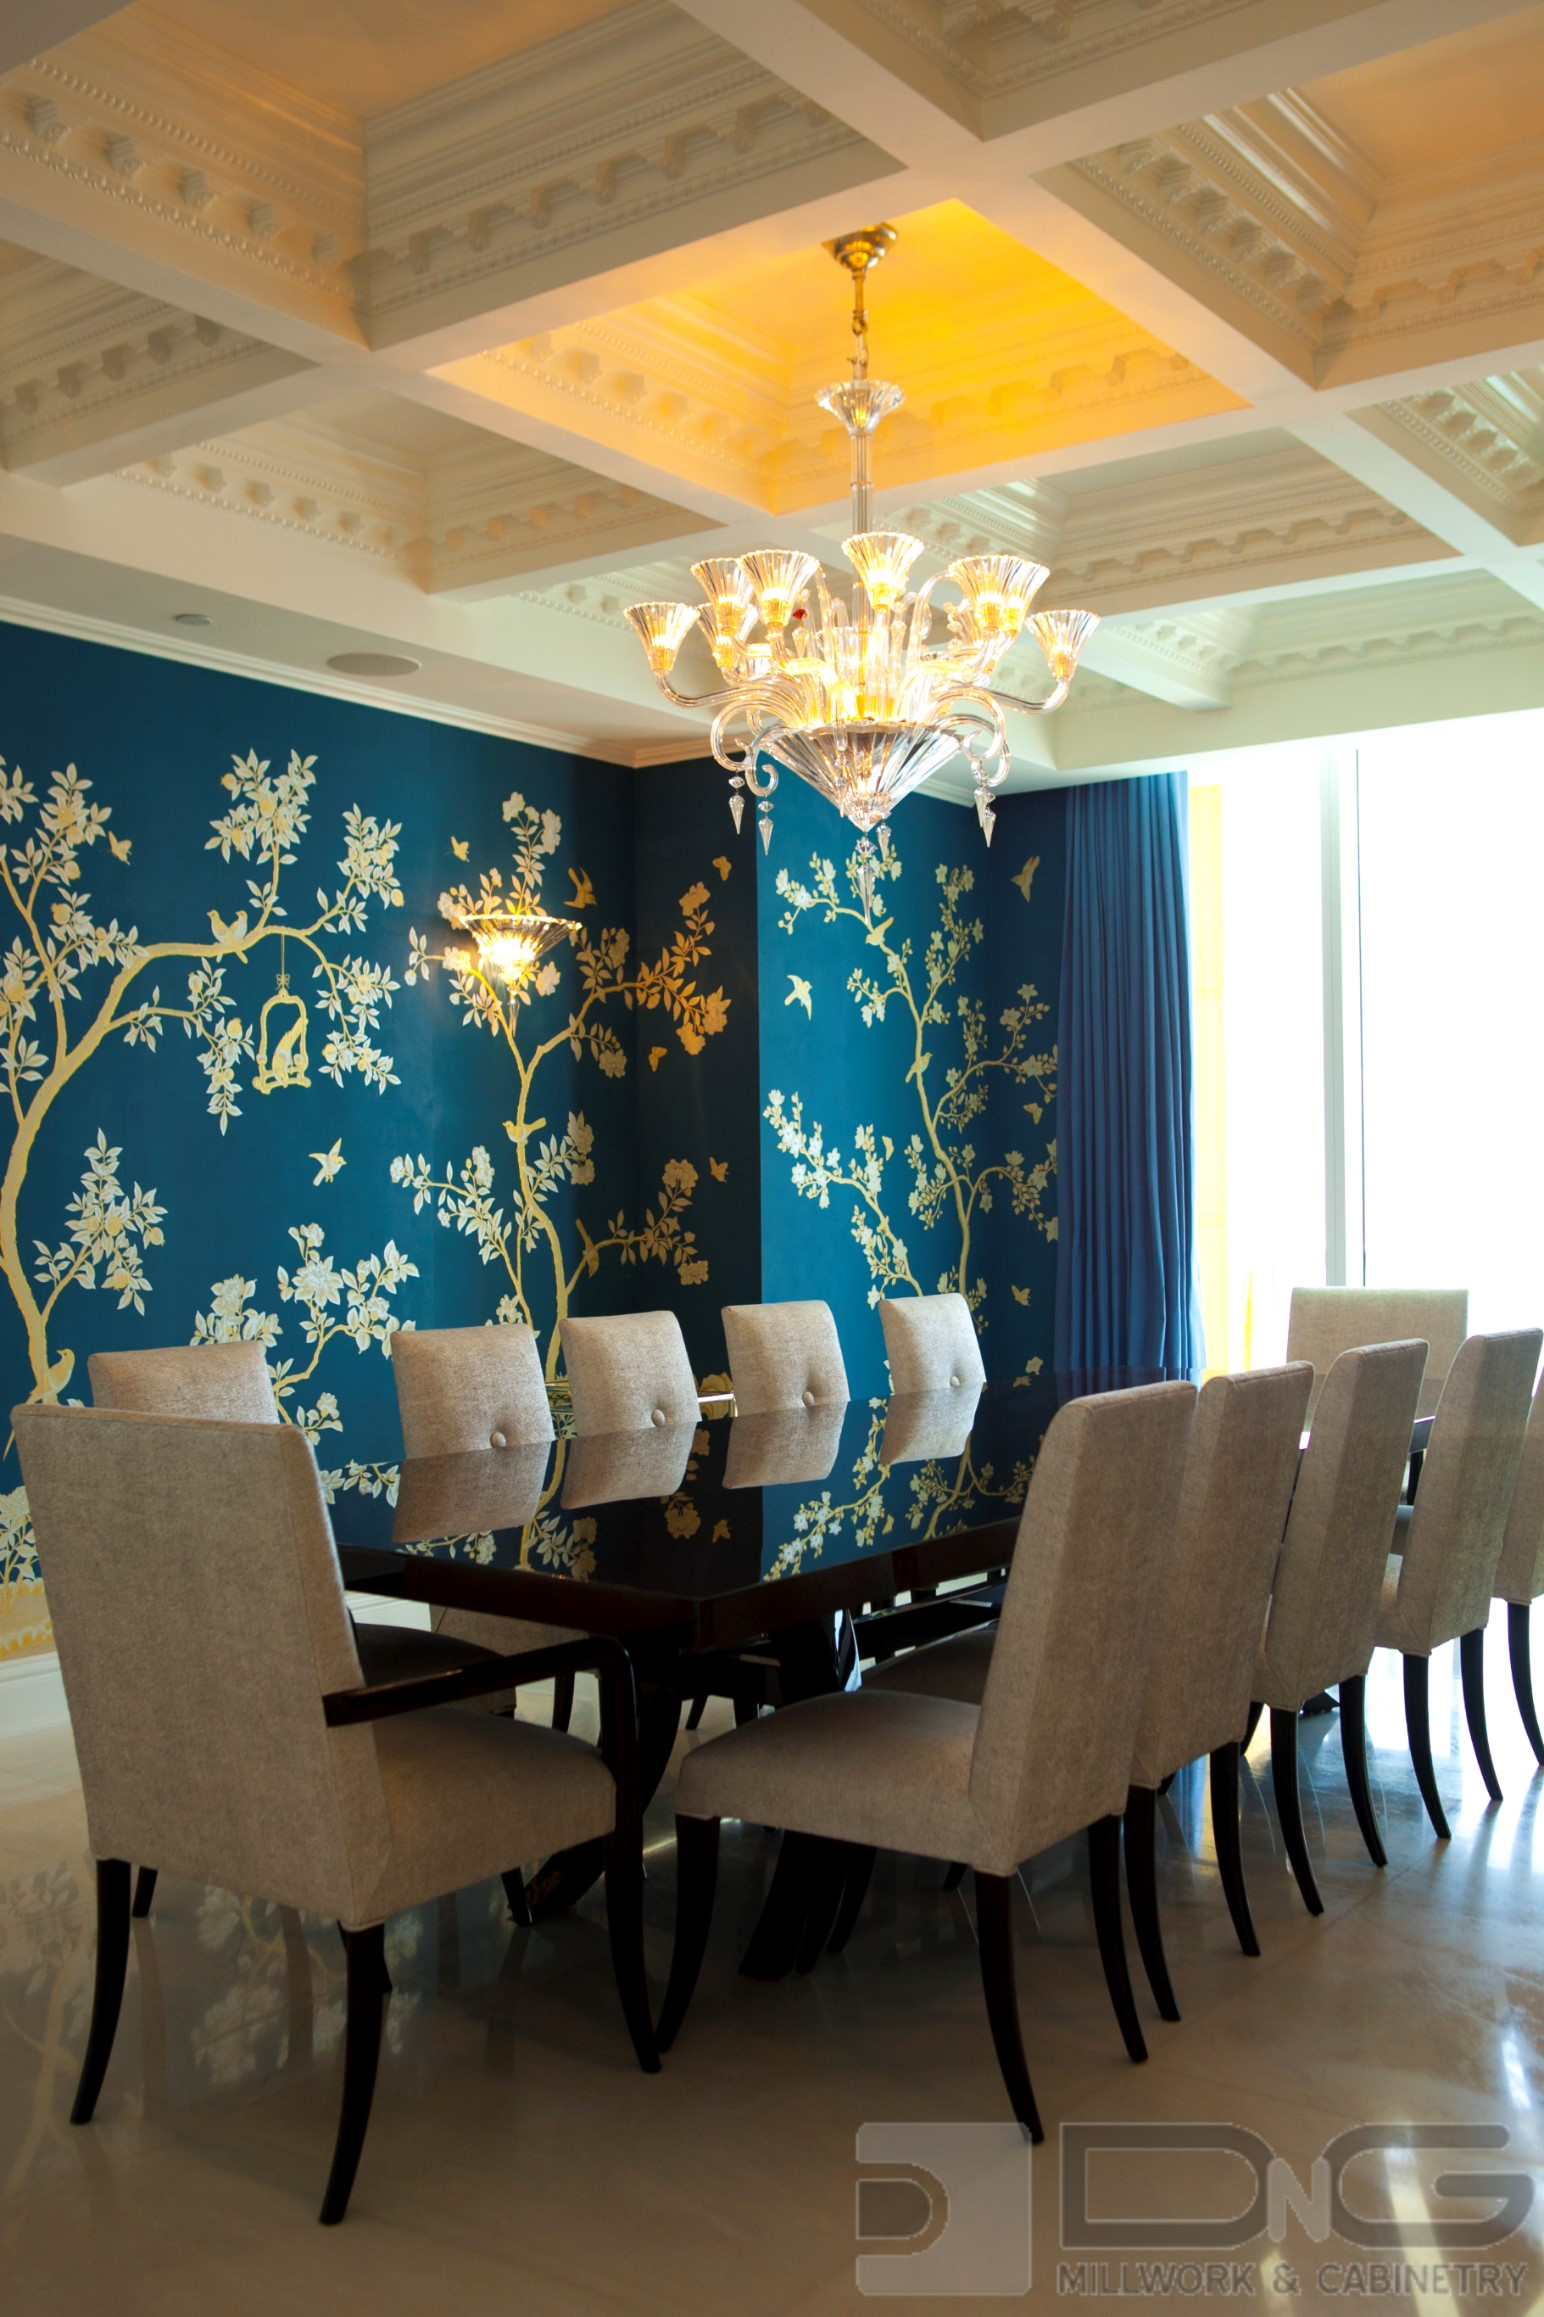 Elaborate Coffered Ceiling with Crown Molding